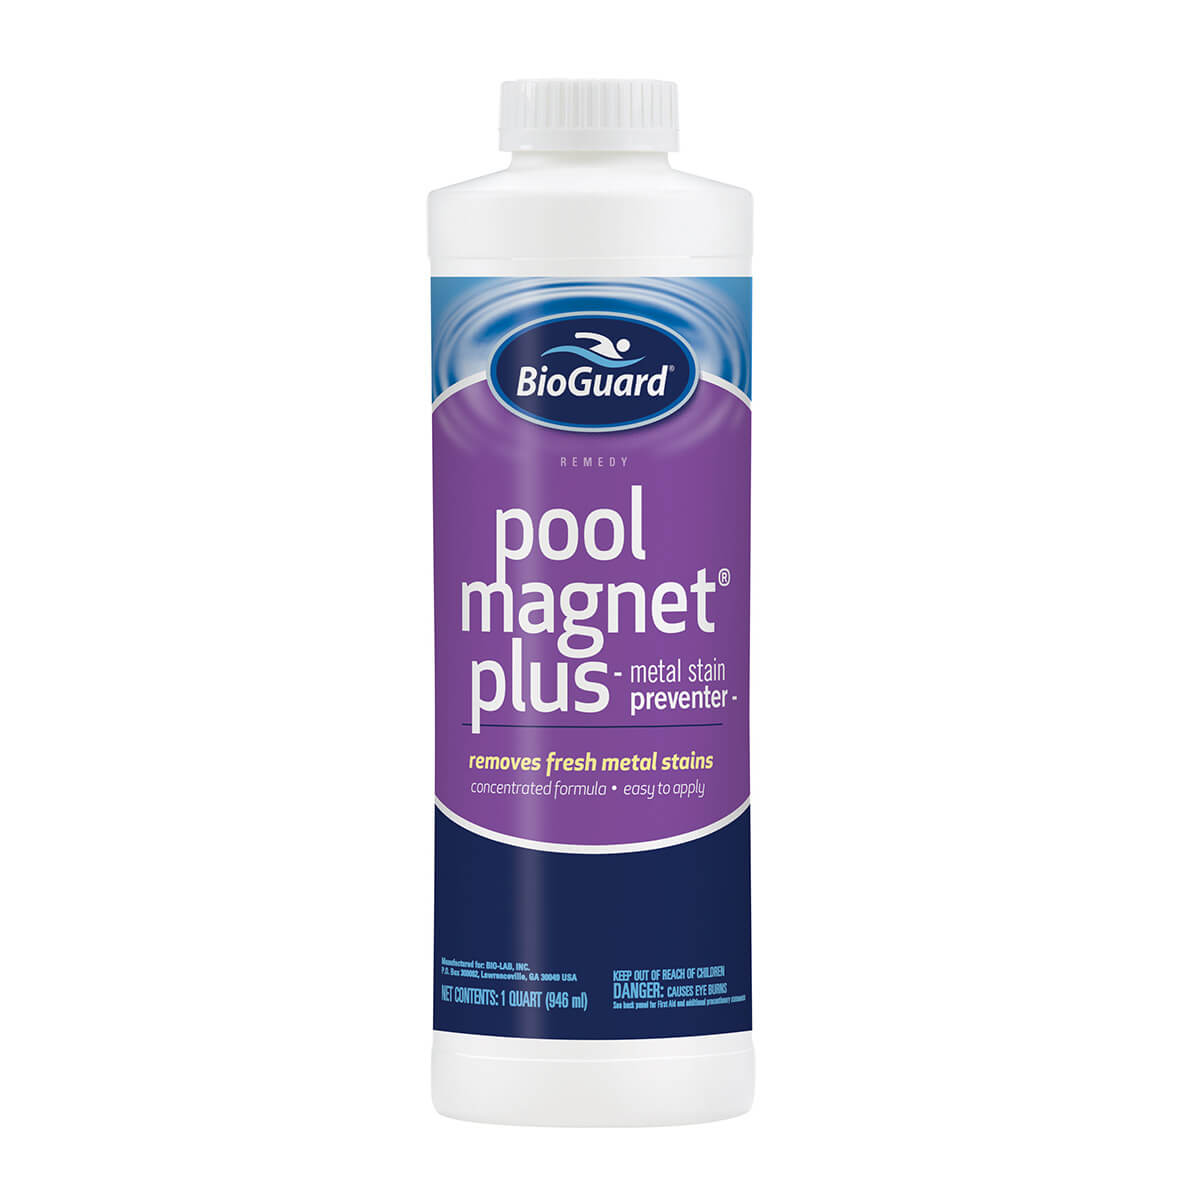 BioGuard Pool Magnet Plus